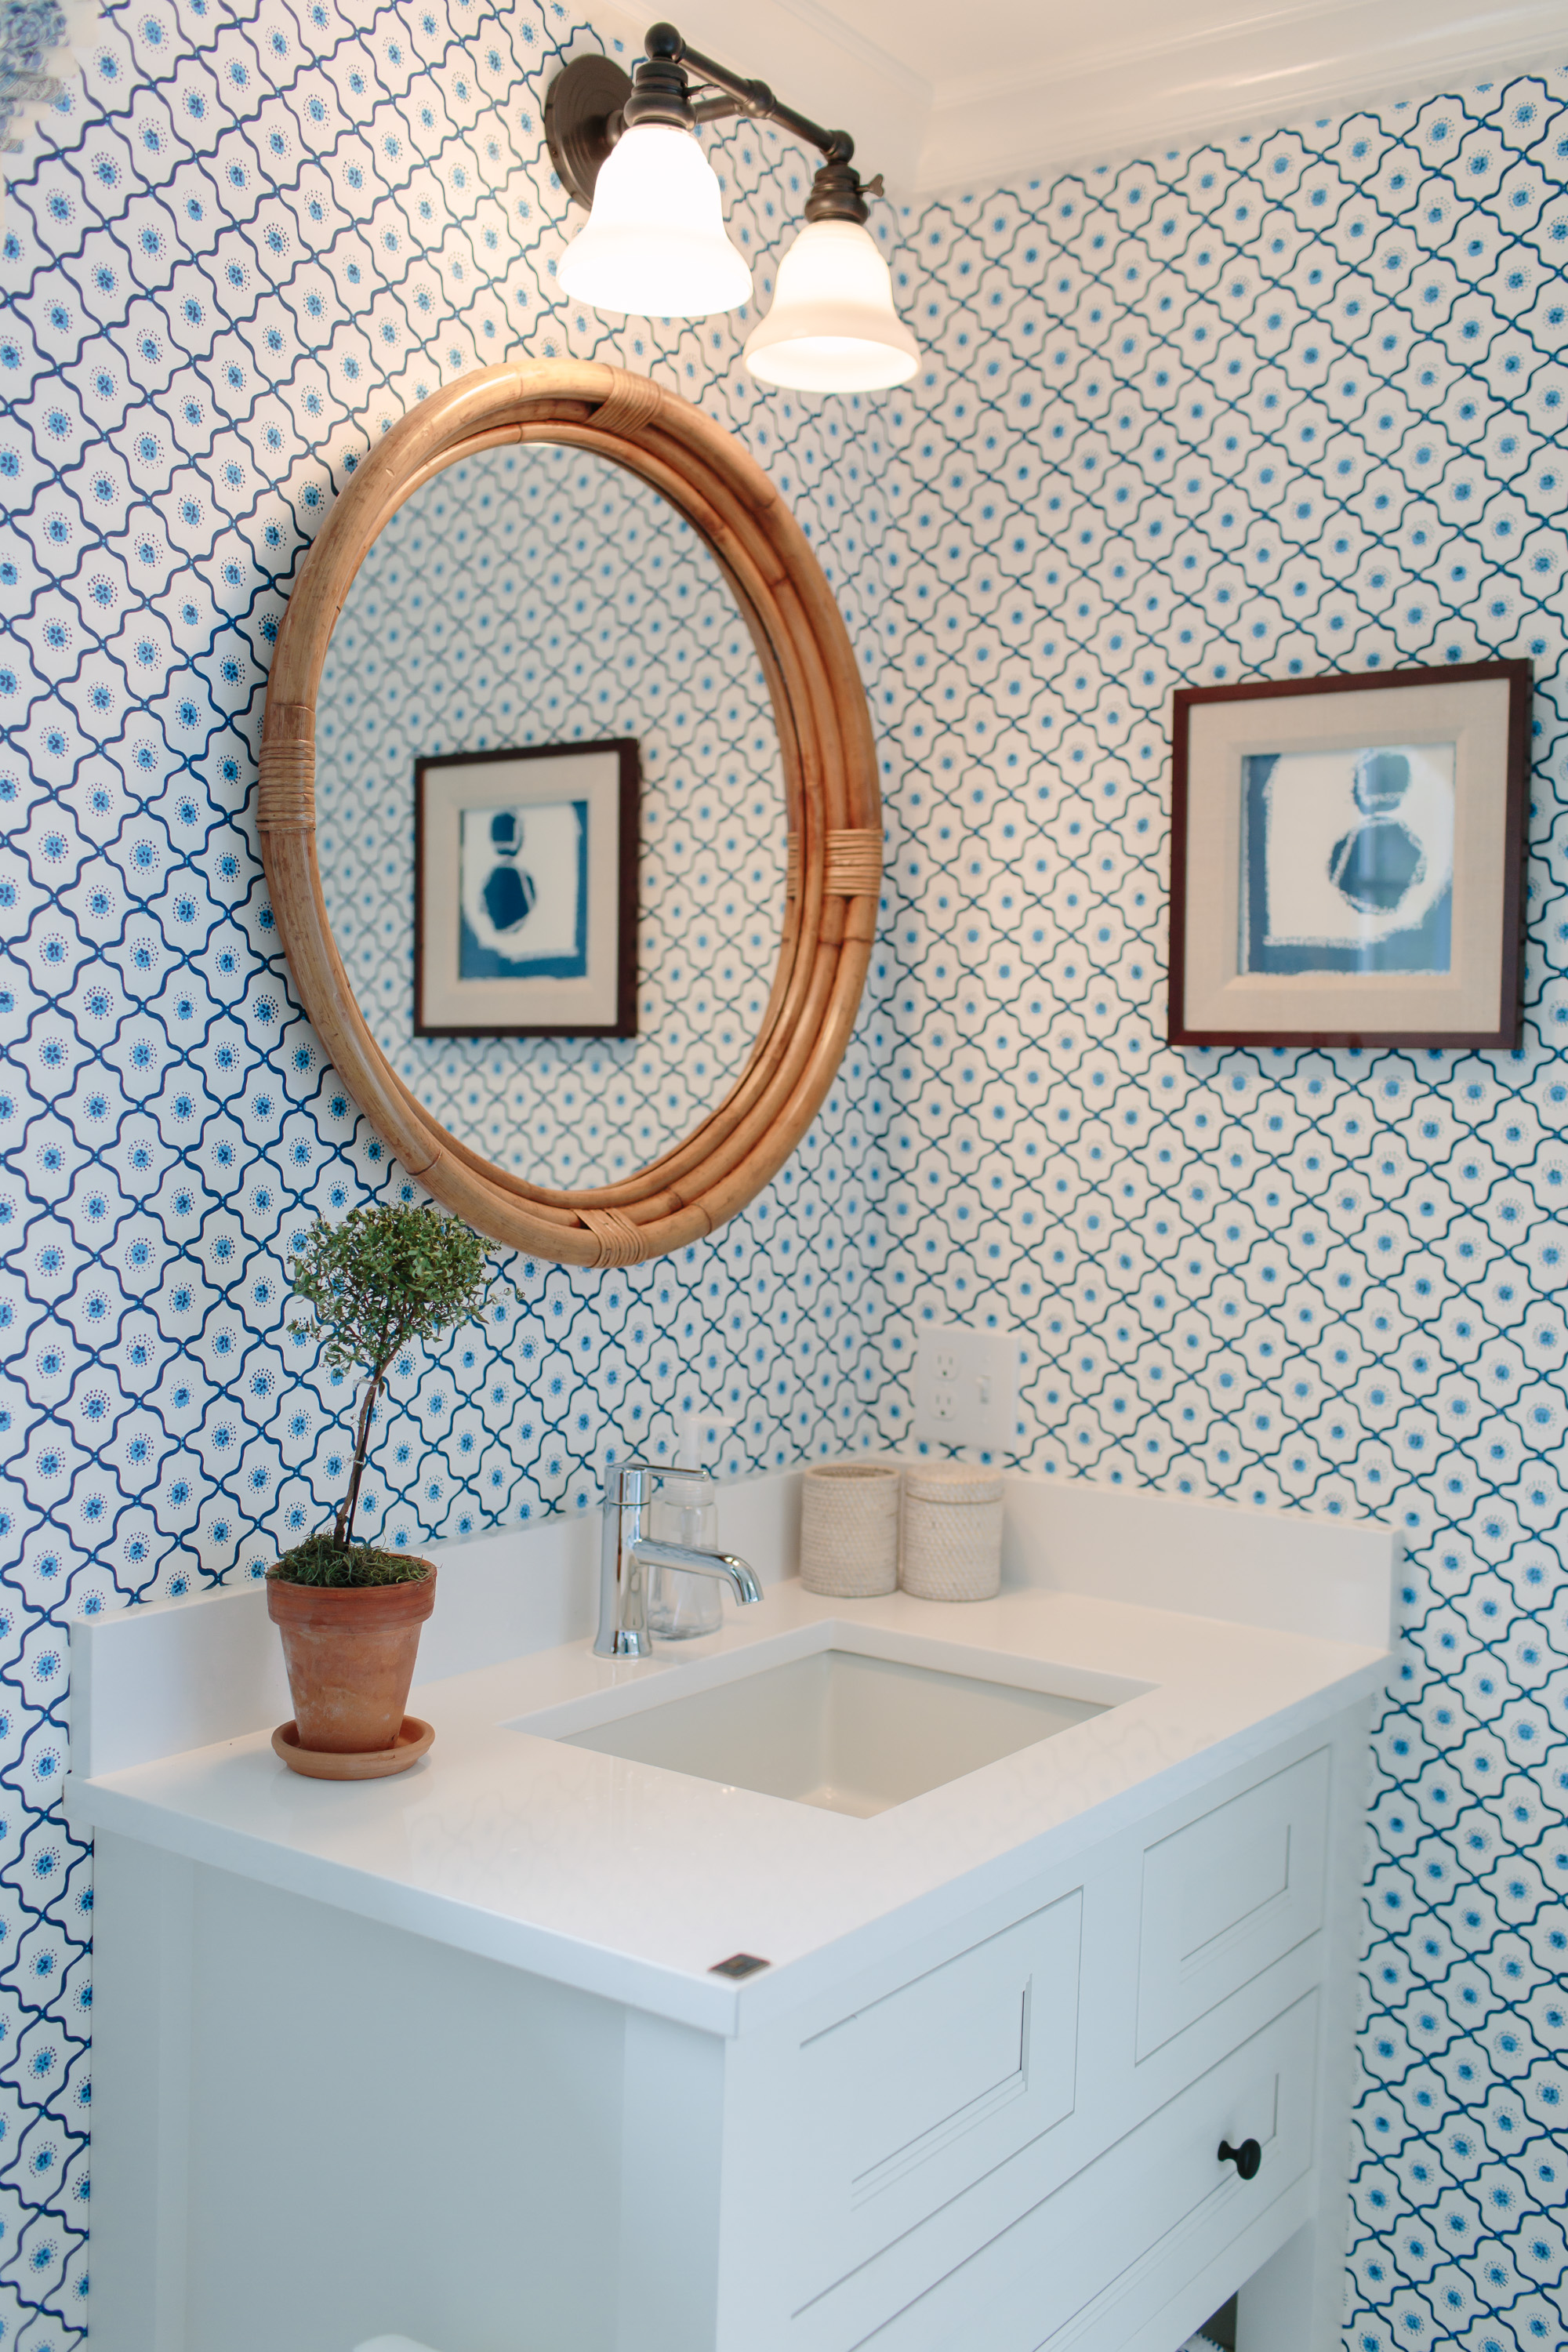 Two Separate Bathrooms The Trim In Bathroom On Right Is Hand Painted Onto Wall It Feels Modern And A Little Sporty Which Provides Nice